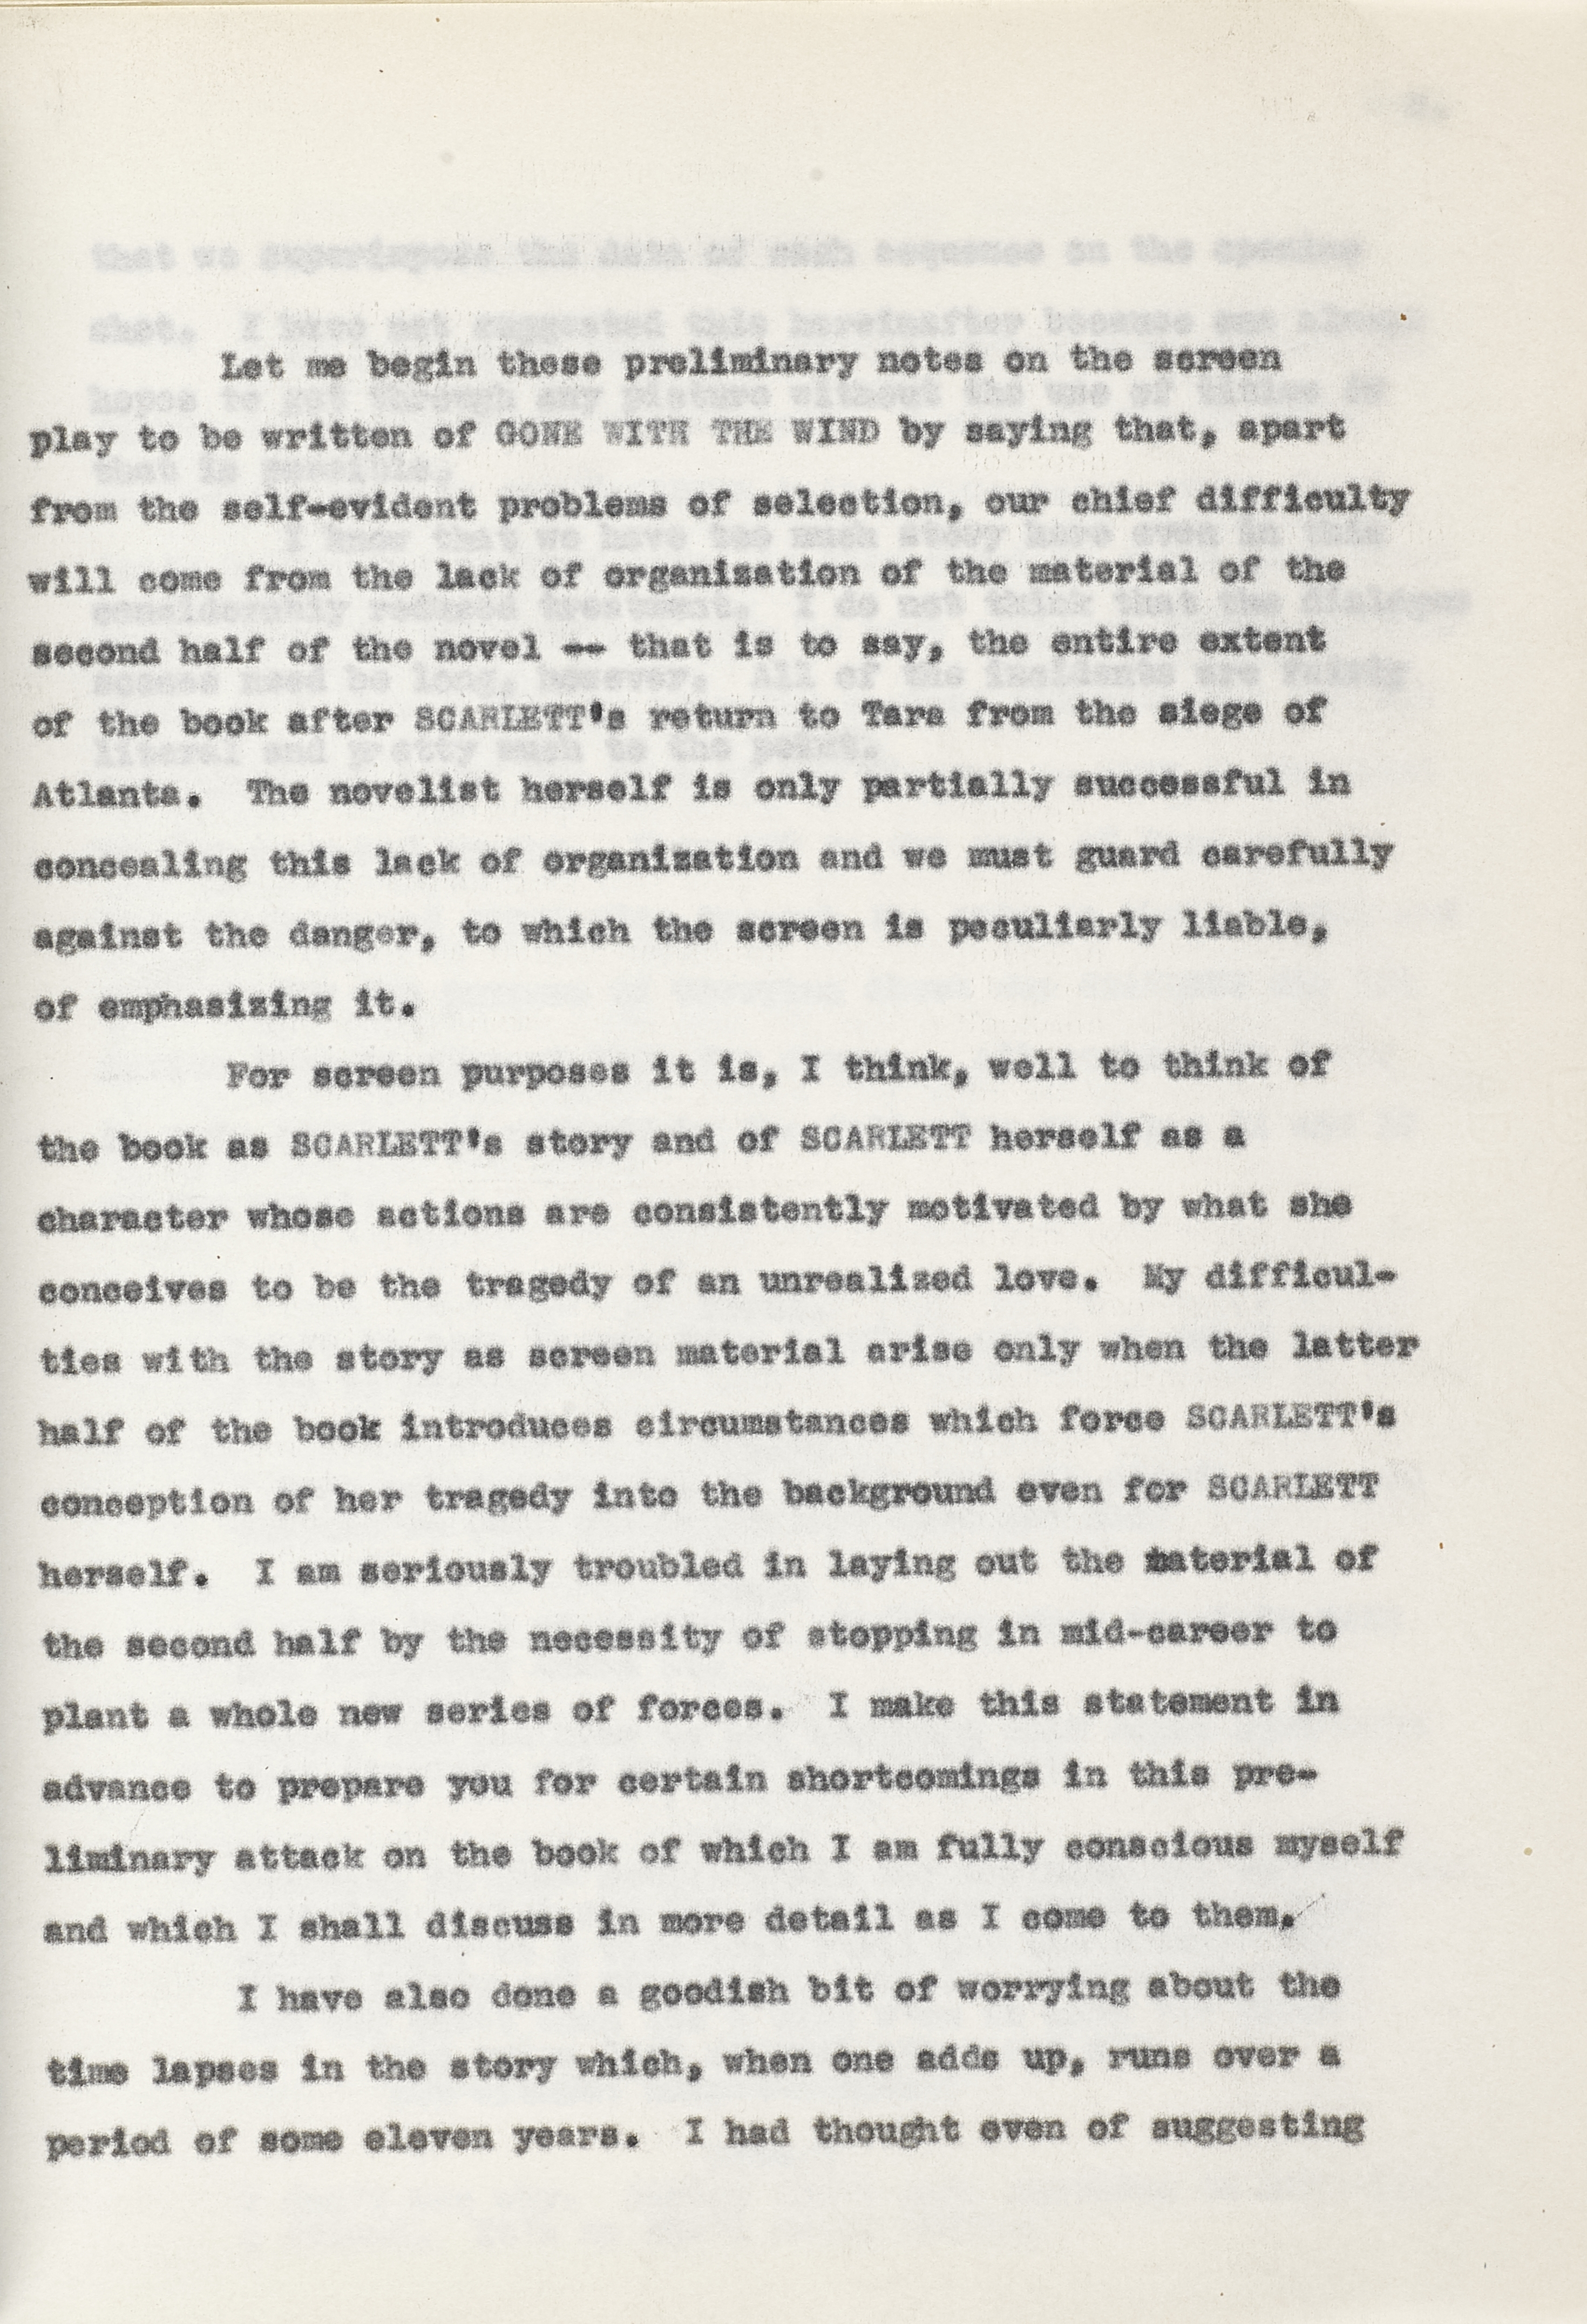 A Gone With the Wind preliminary story treatment by Sidney Howard